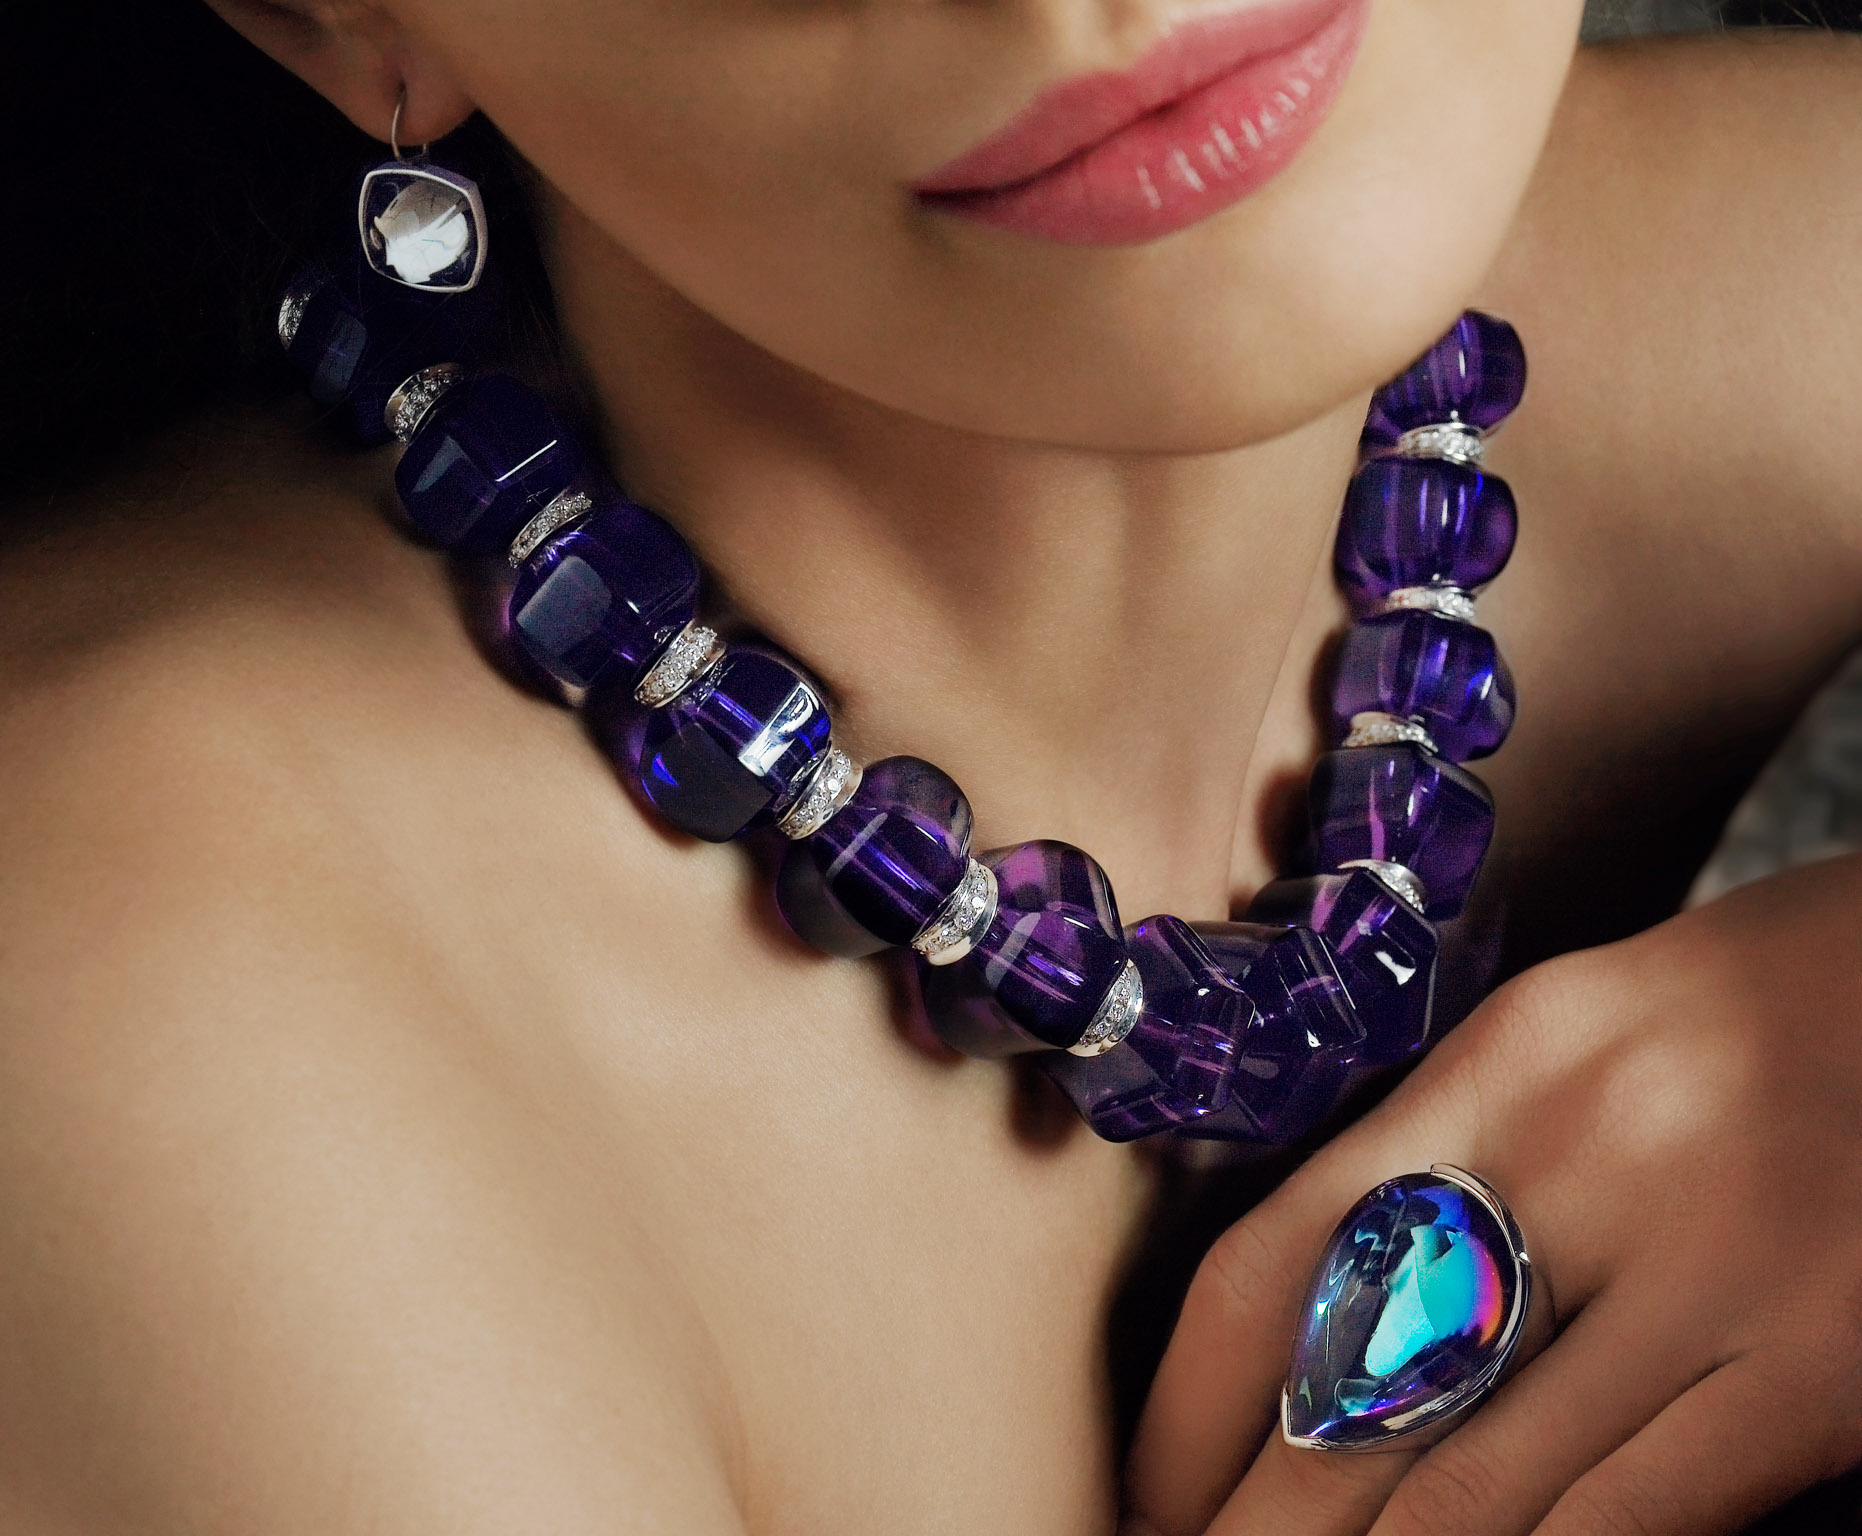 055_baccarat_jewelry_3_023__